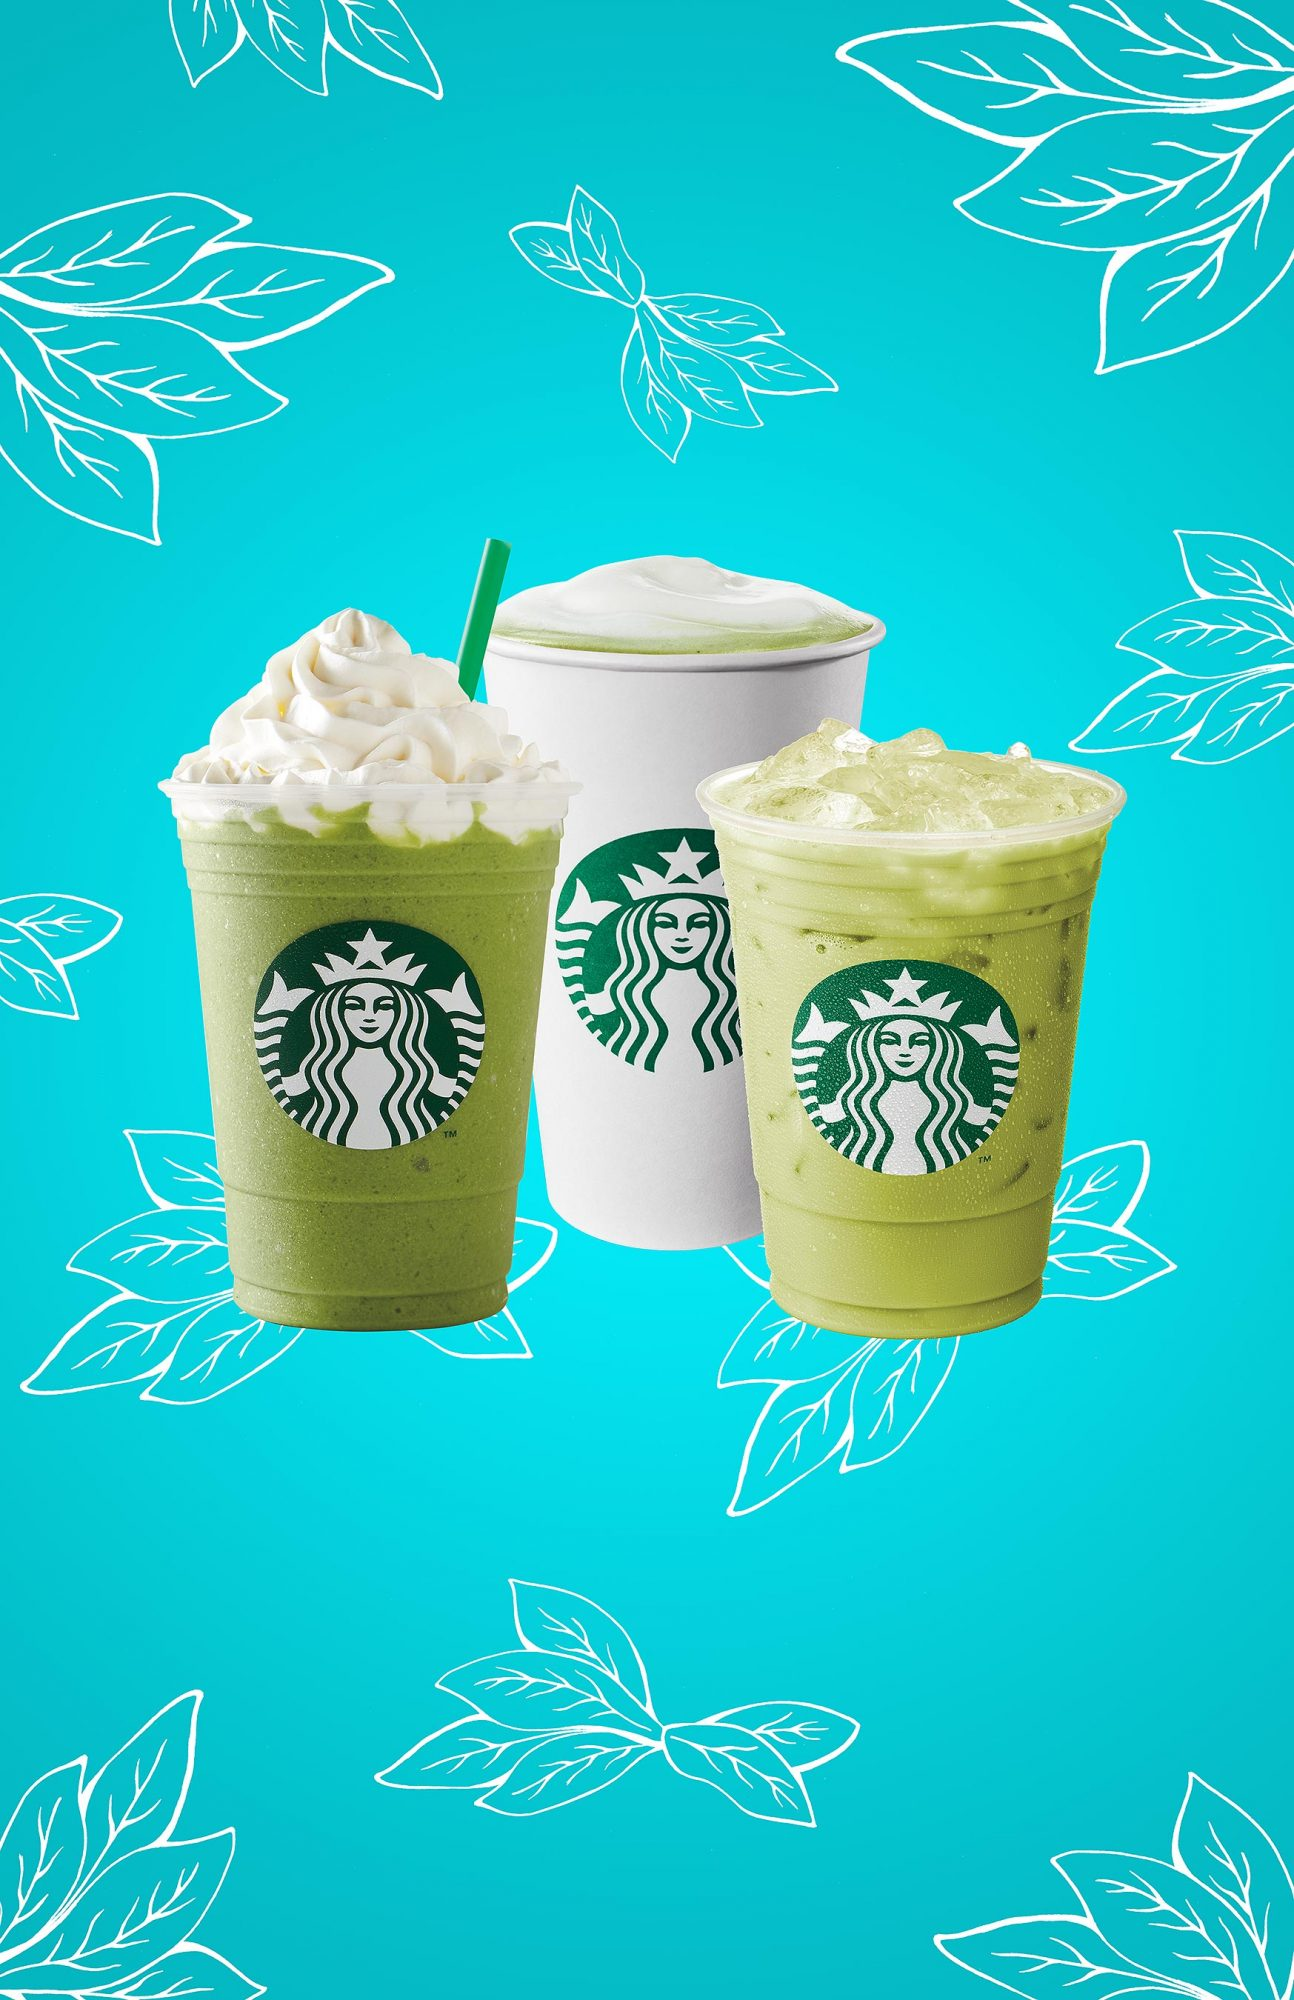 Starbucks Debuts New 'Cloud' Drink That Promises to Be 'Unlike Anything You've Ever Tasted Before' starbucks-new-menu-items-1